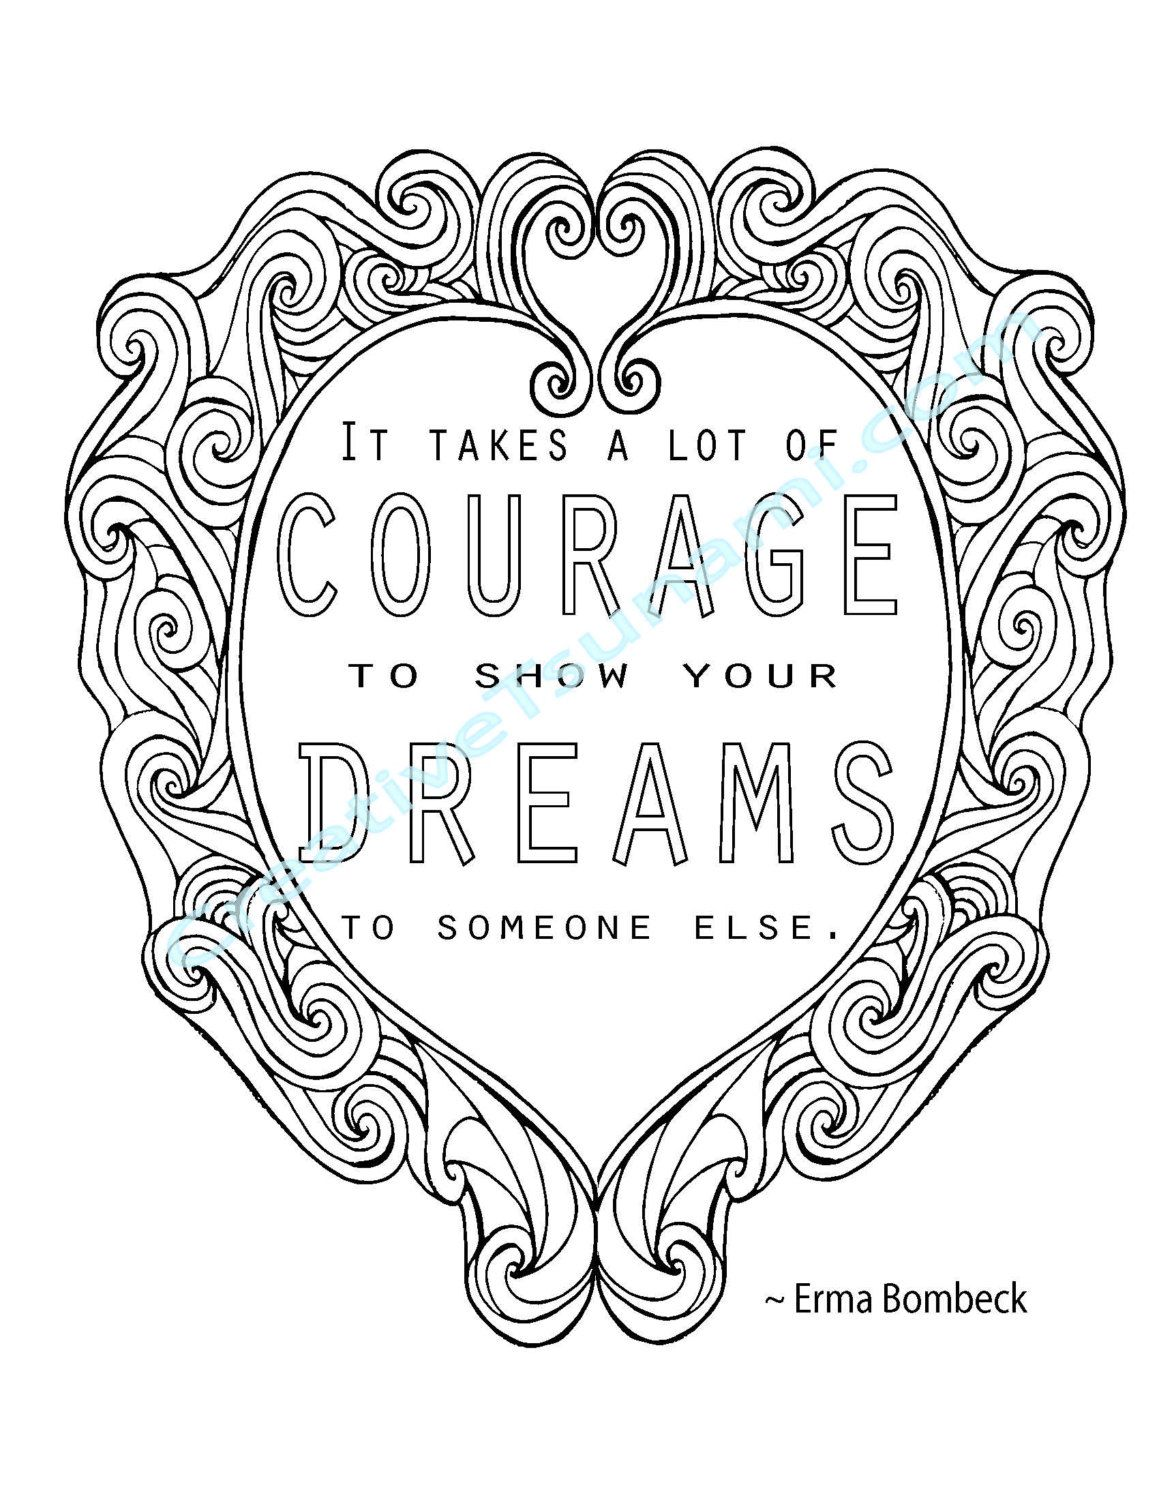 Adult Coloring Erma Bombeck Quote Courage & Dreams | Erma ...